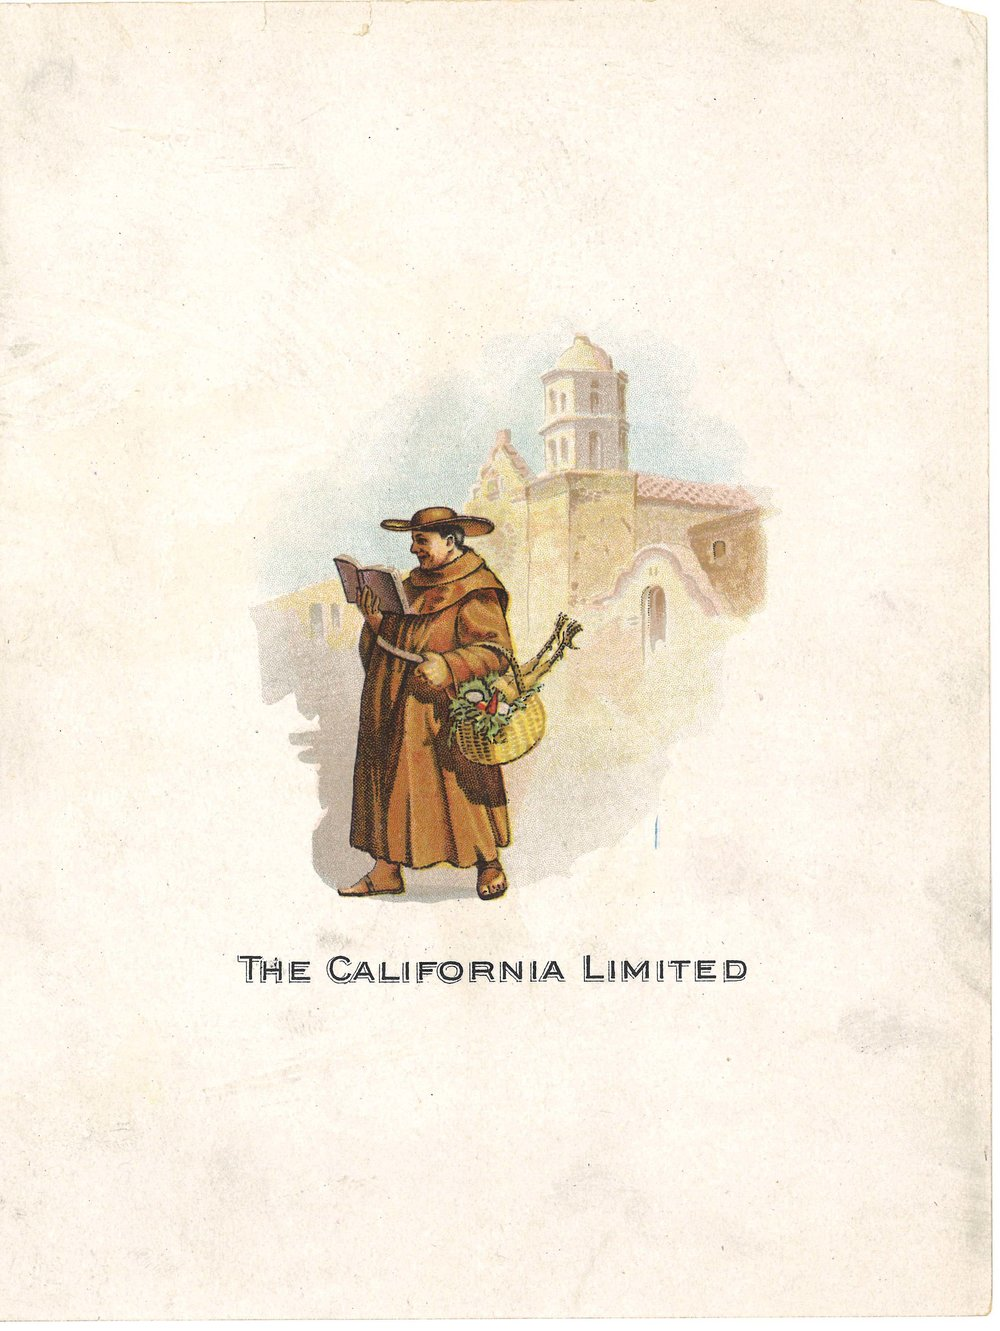 The California Limited Dinner Menu September 1909_1aSm.jpg